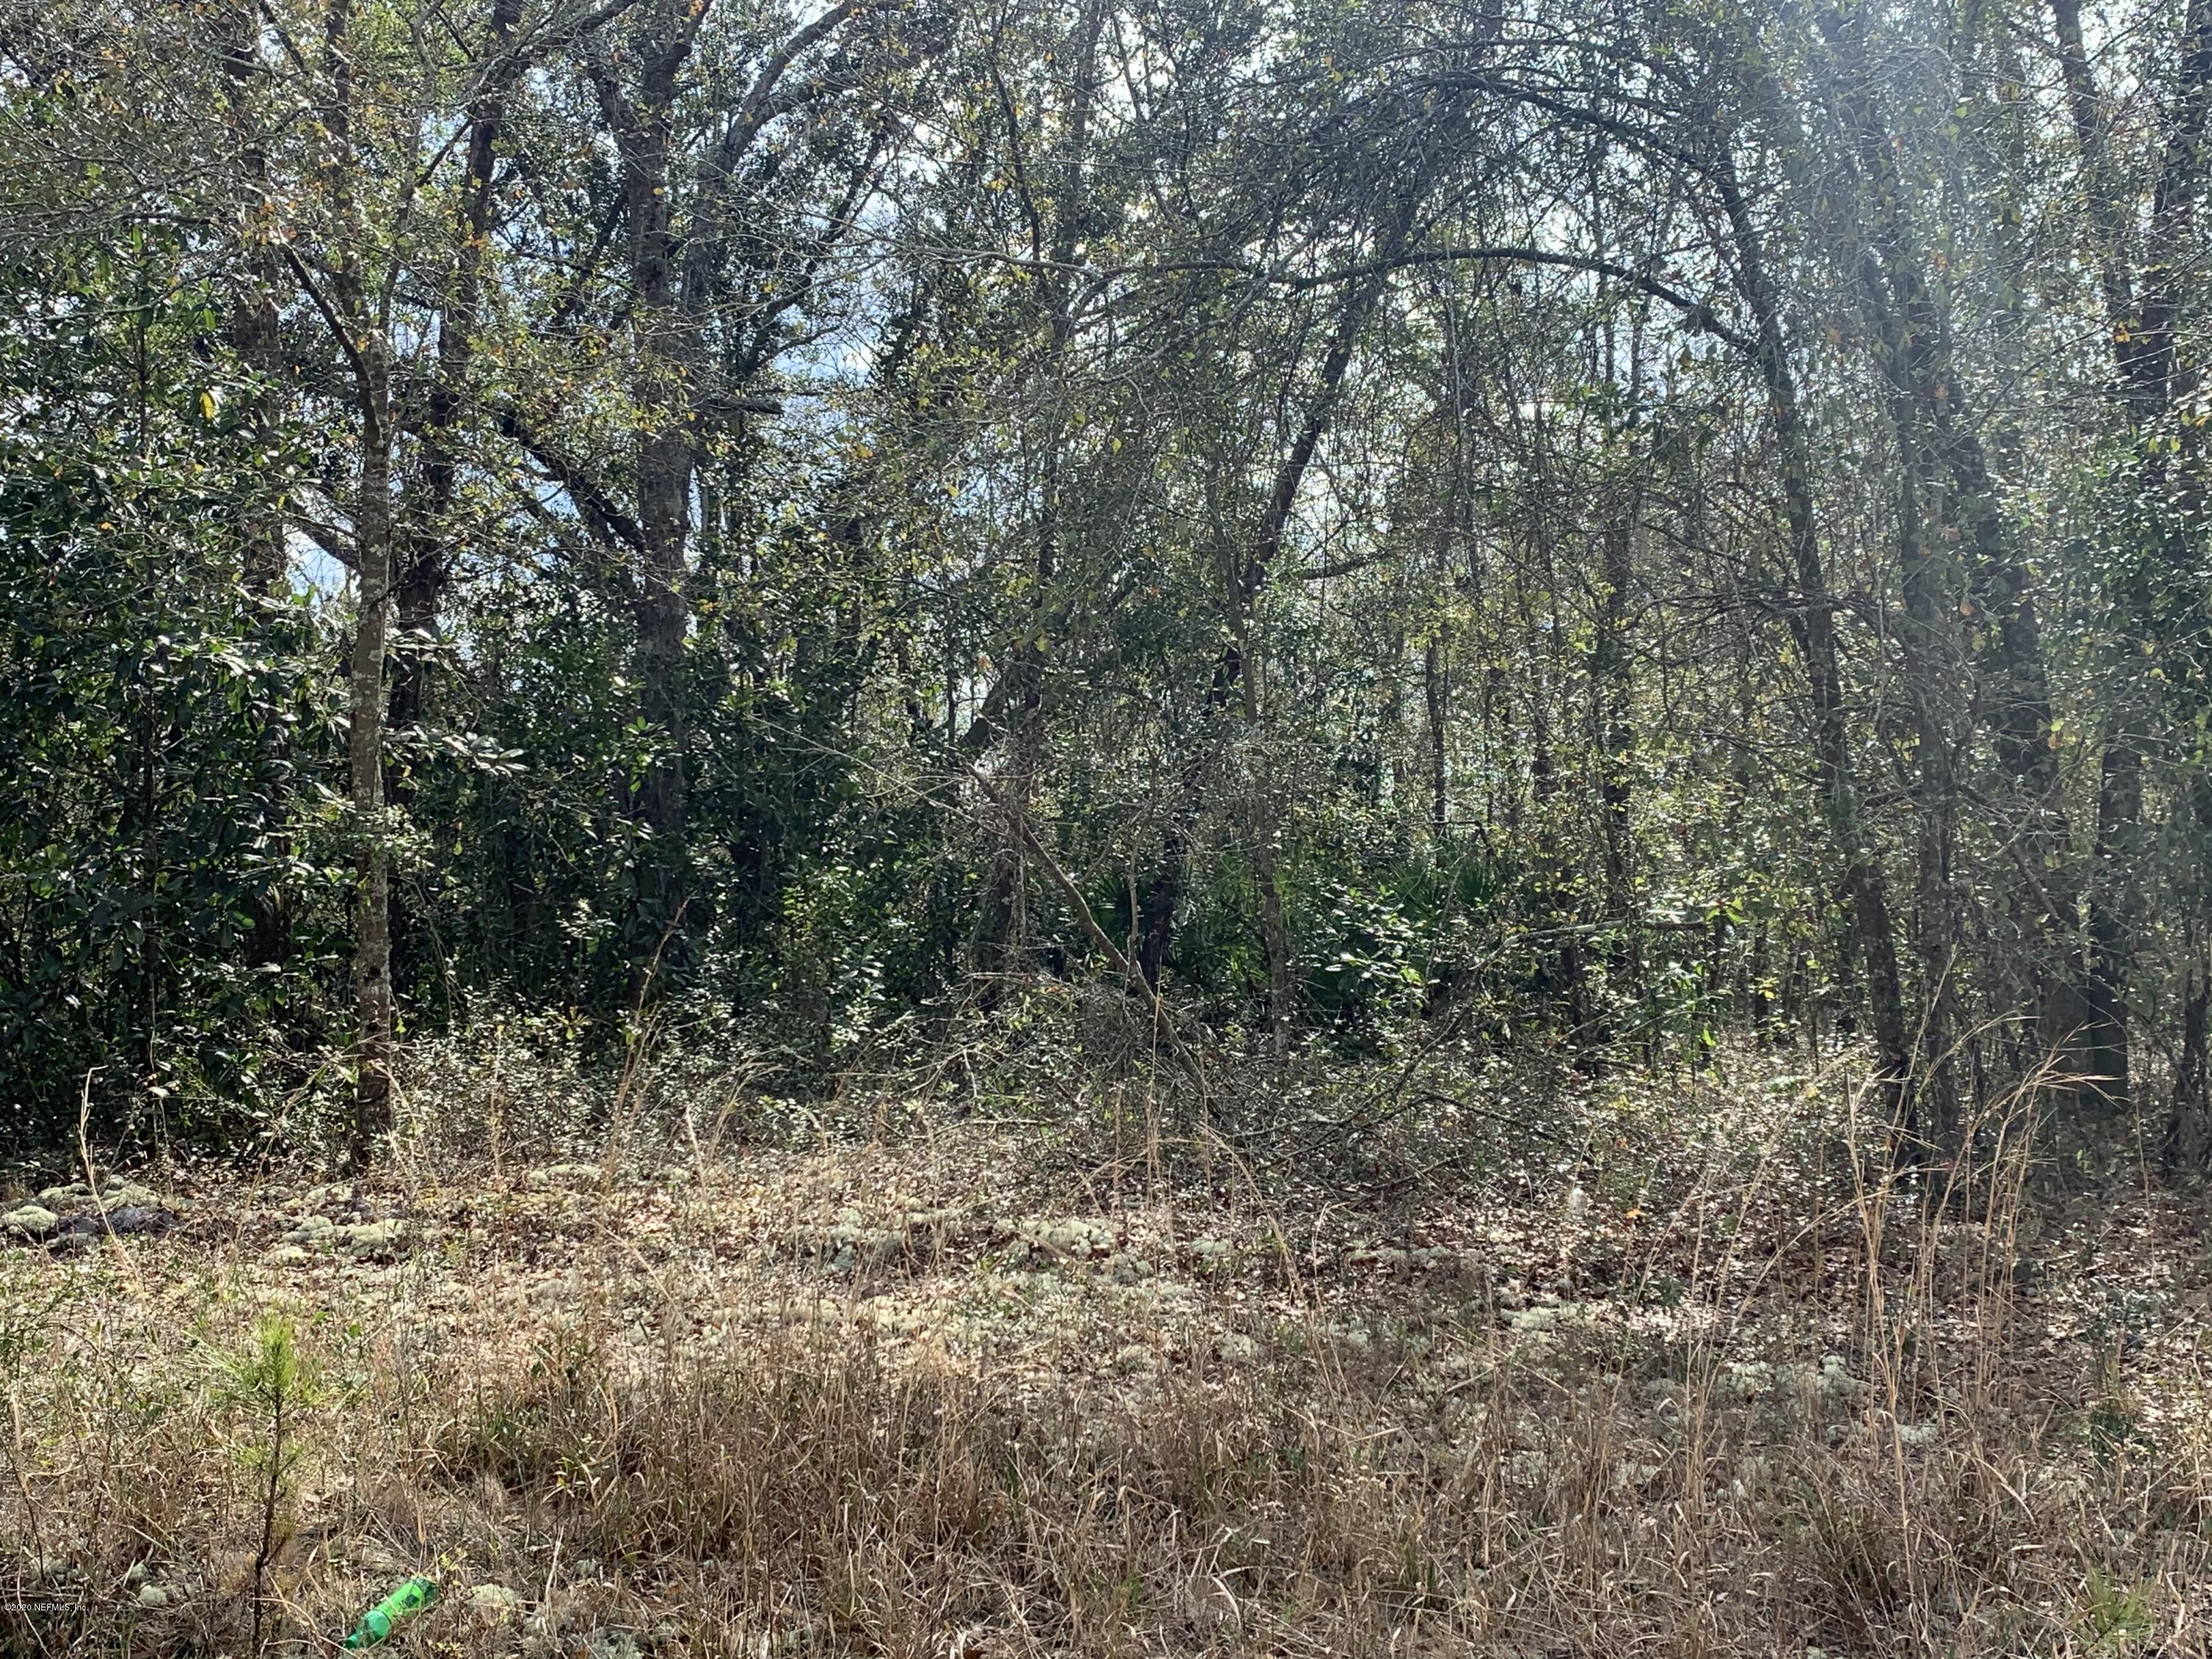 0 NORMANDY, JACKSONVILLE, FLORIDA 32221, ,Vacant land,For sale,NORMANDY,1038752